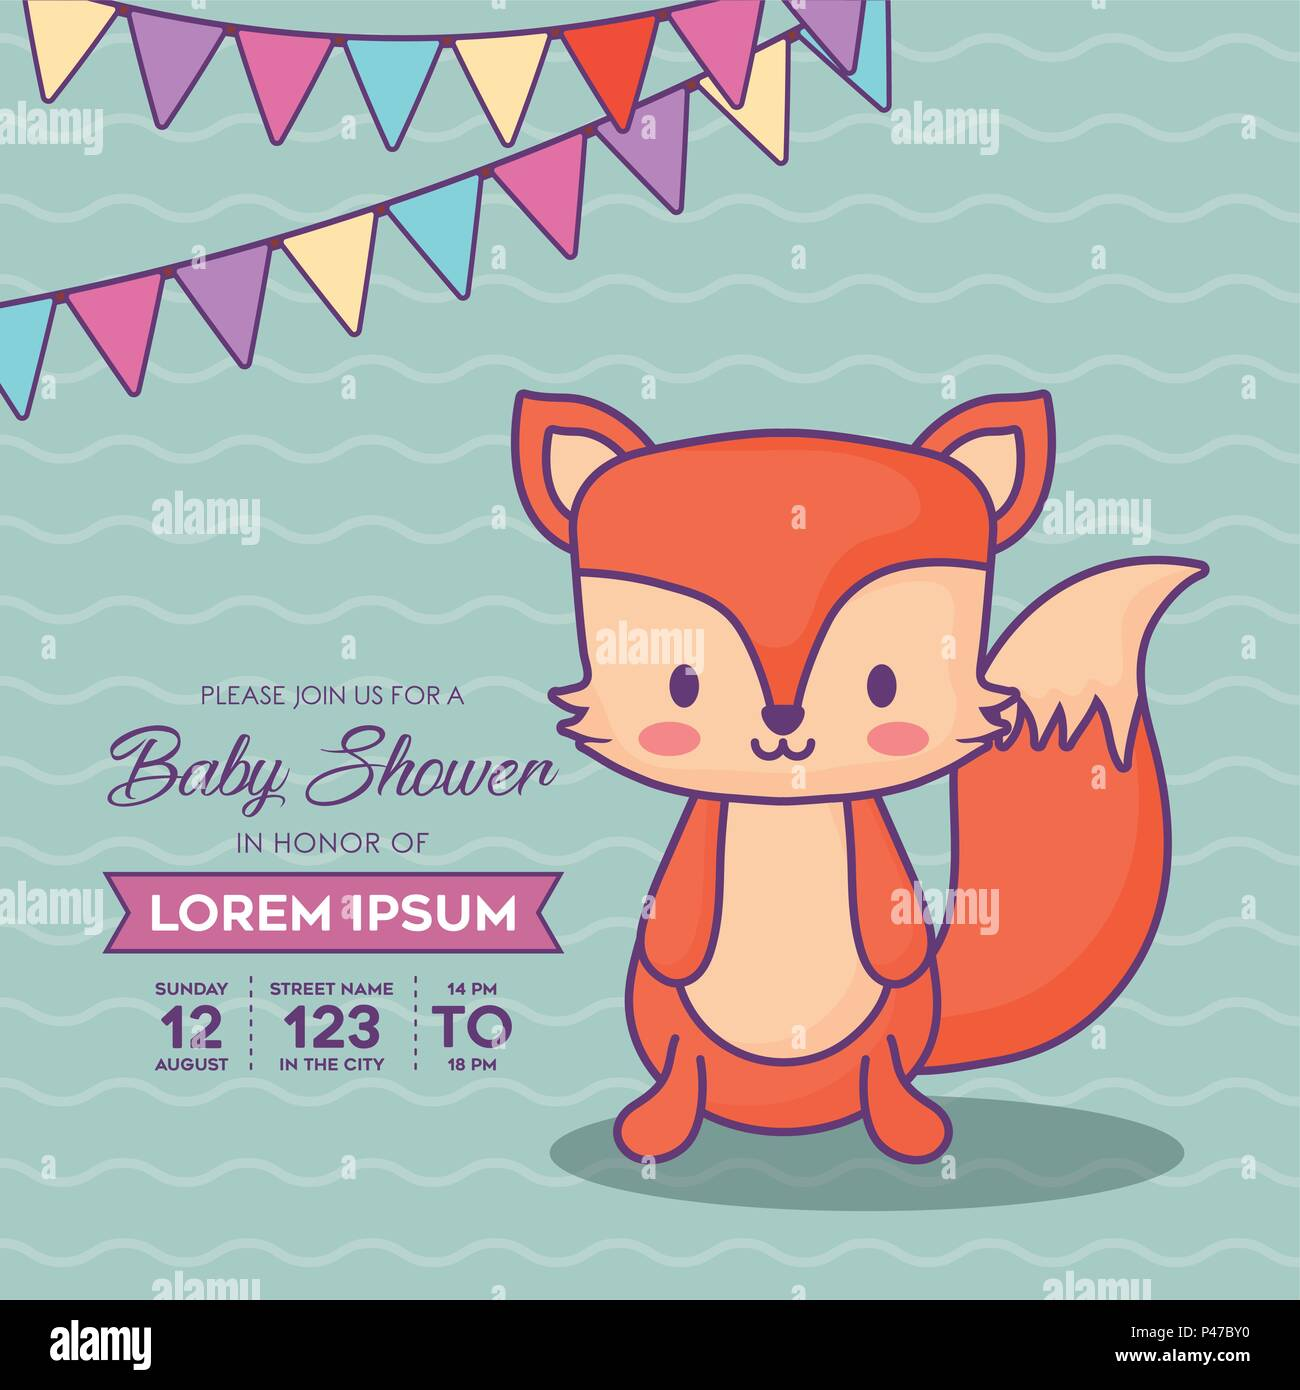 Famous Cute Girl Baby Shower Invitations Ornament - Invitations and ...